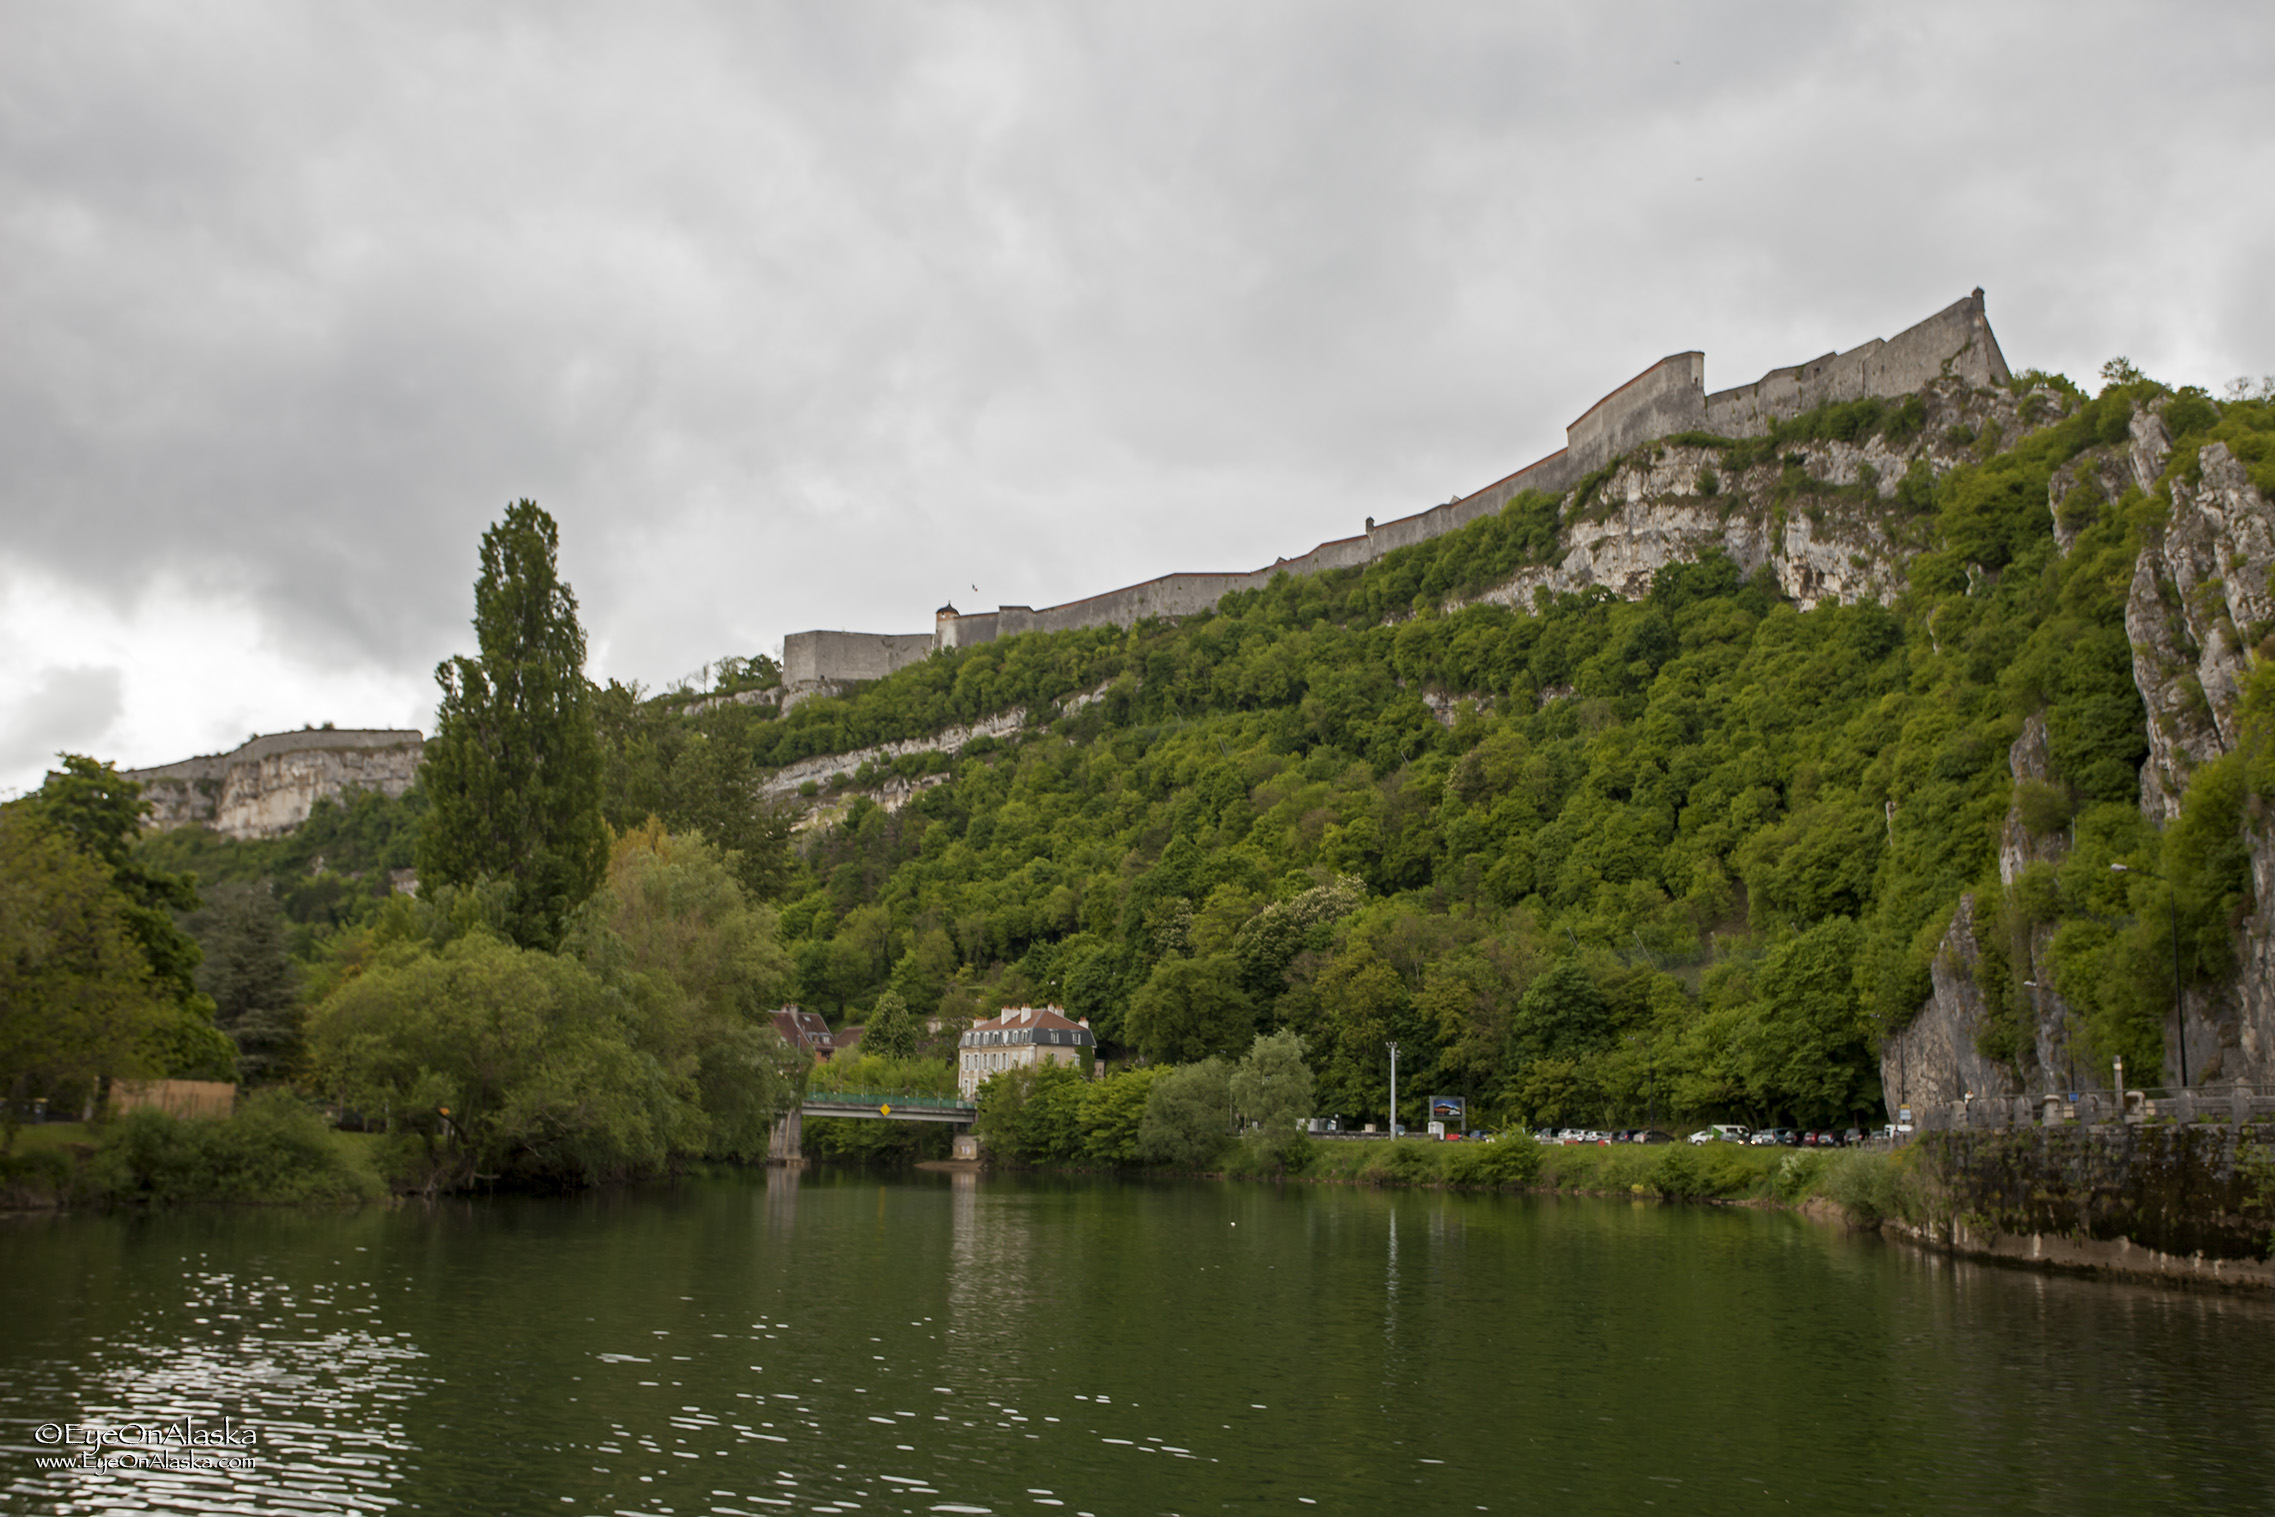 We come around a corner in the river and there's our first glimpse of the old Citadel walls high above Besançon.  It's huge!  We'll explore it tomorrow.